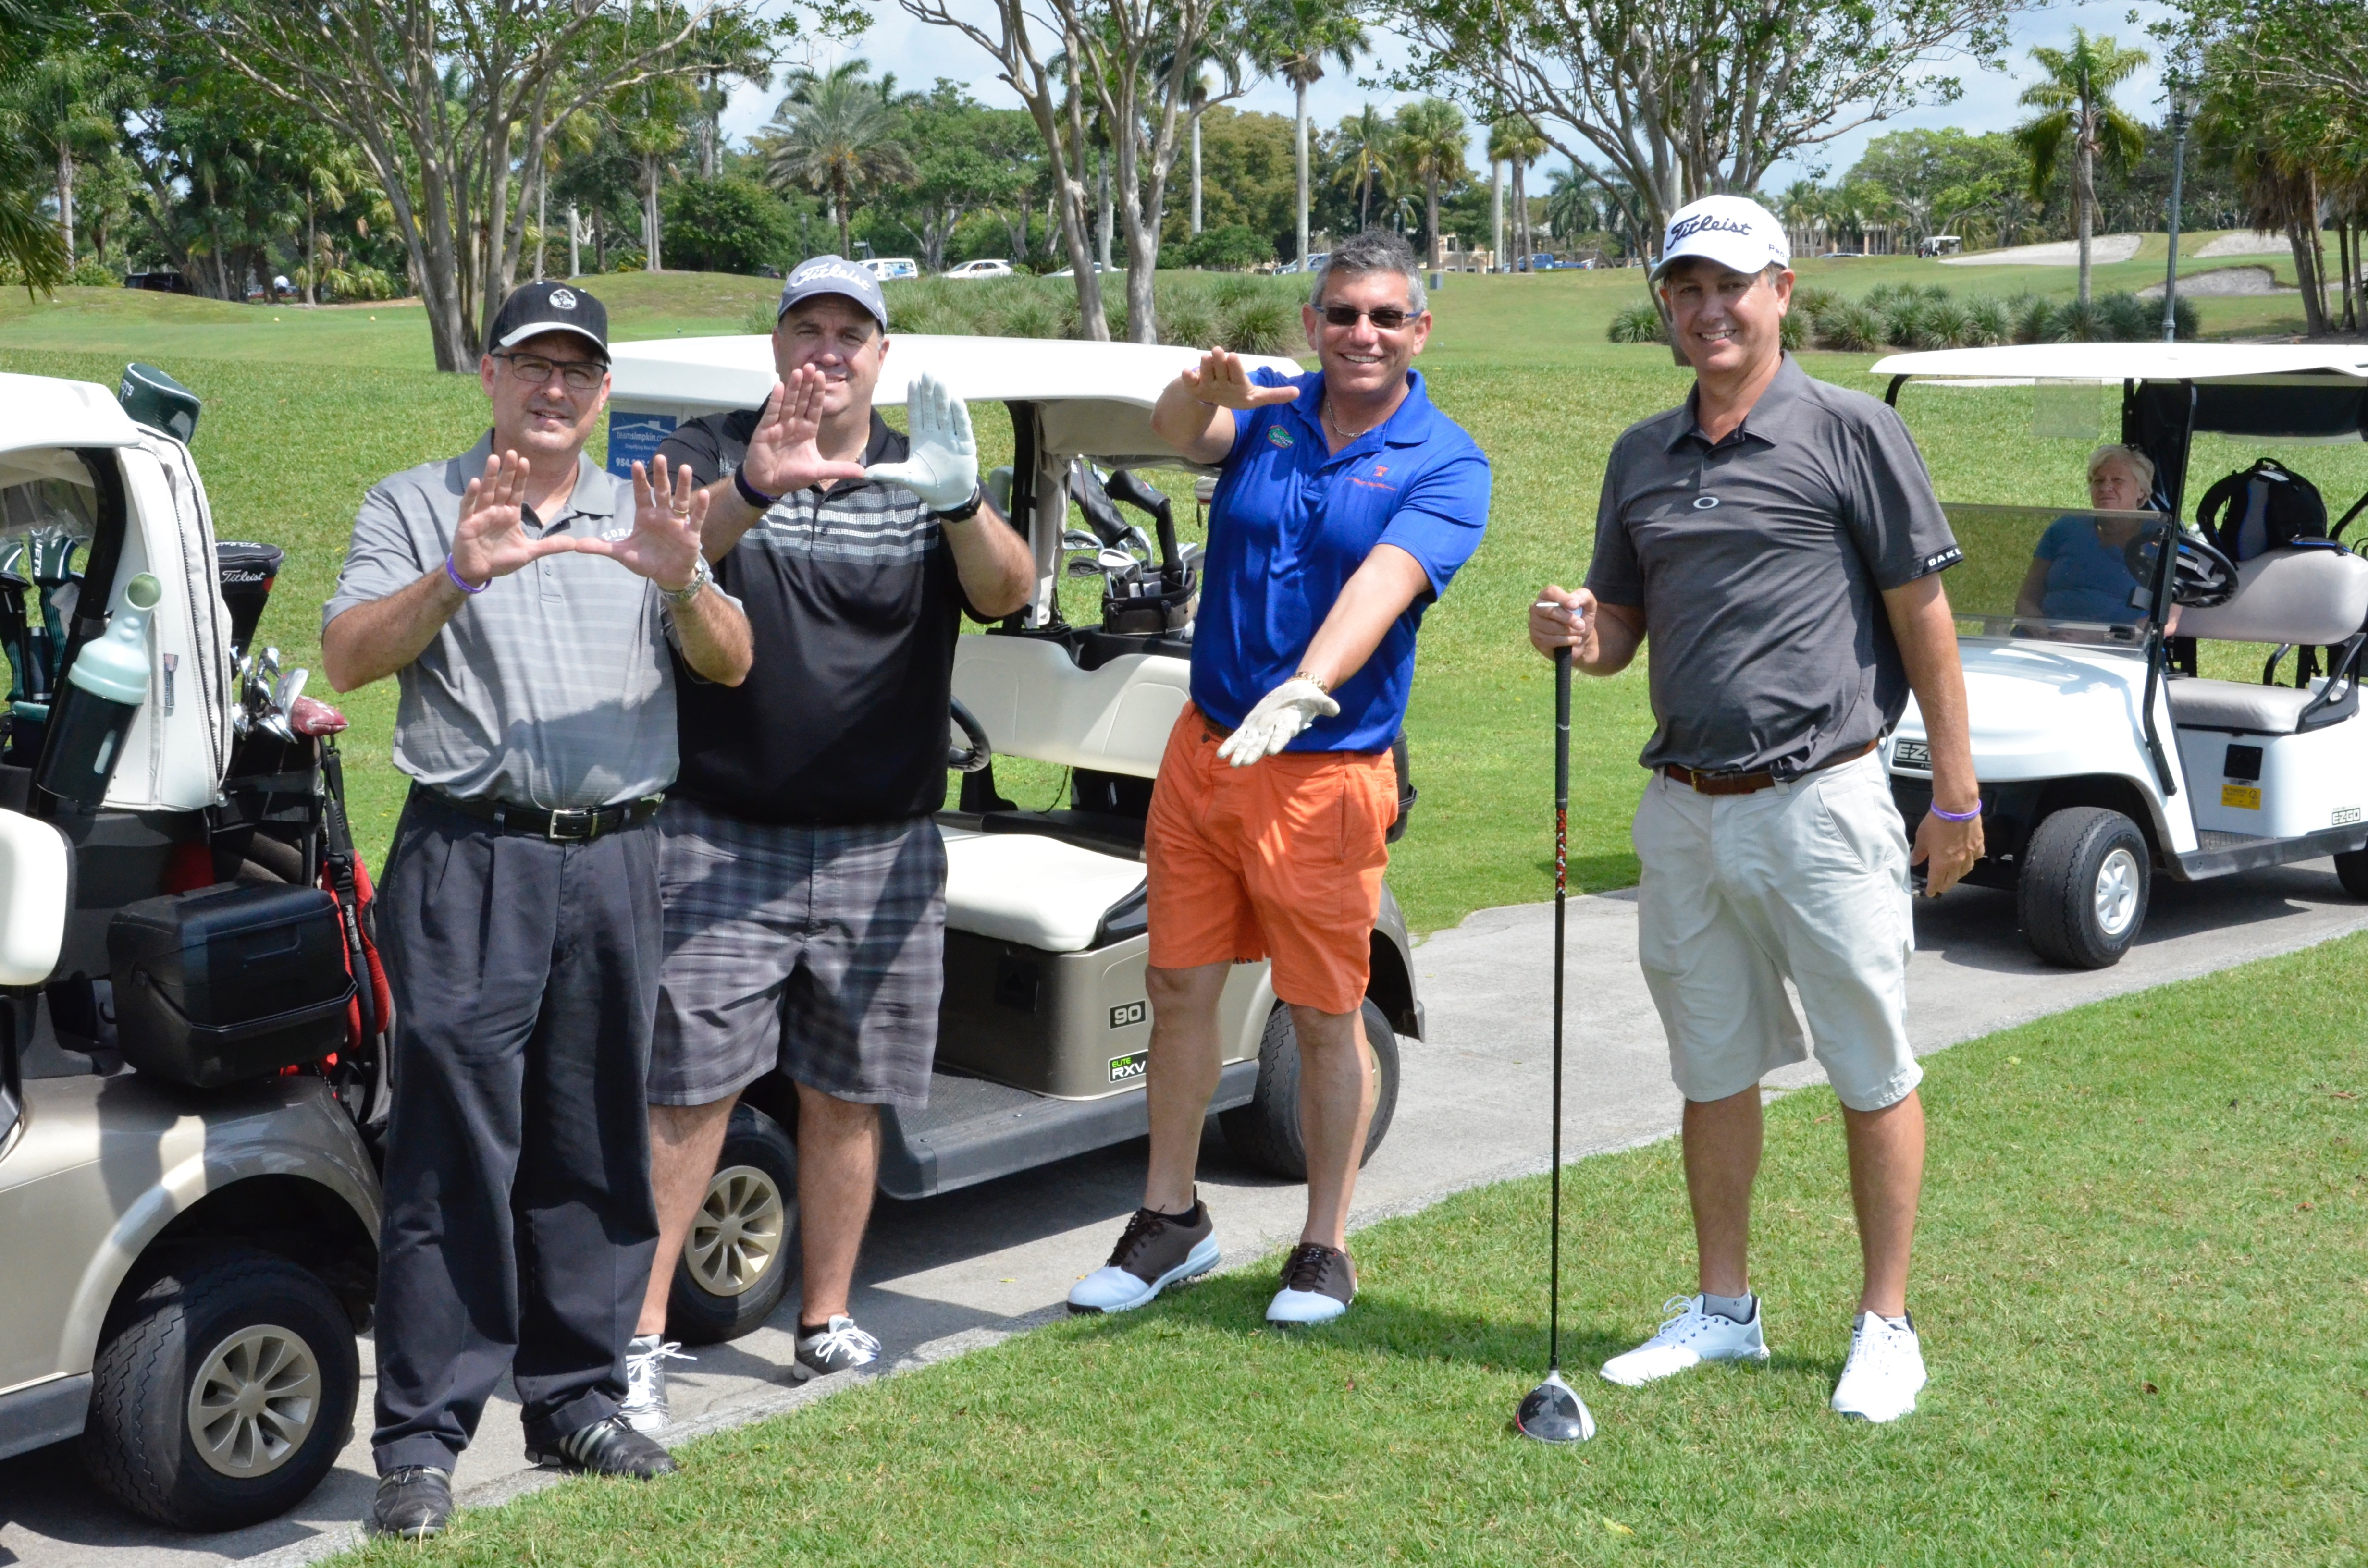 33rd Annual Rotary Golf Classic Sponsored by FHVLEGAL.COM gallery image #83